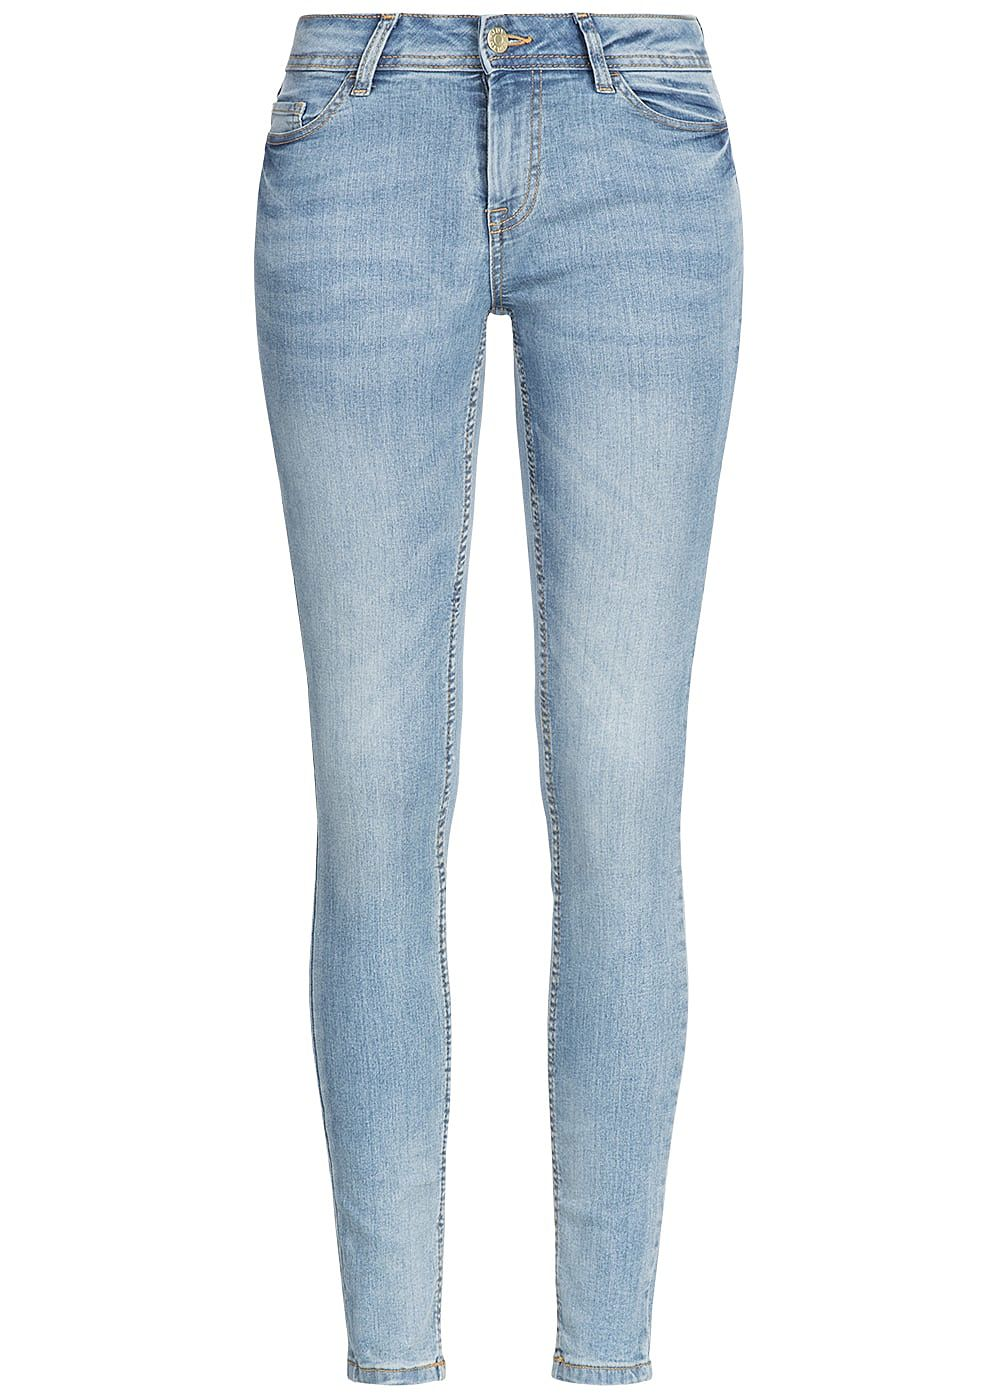 JDY by ONLY Skinny Jeans Hose 5-Pockets Zipper NOOS hell blau denim ... bcca78fb6d